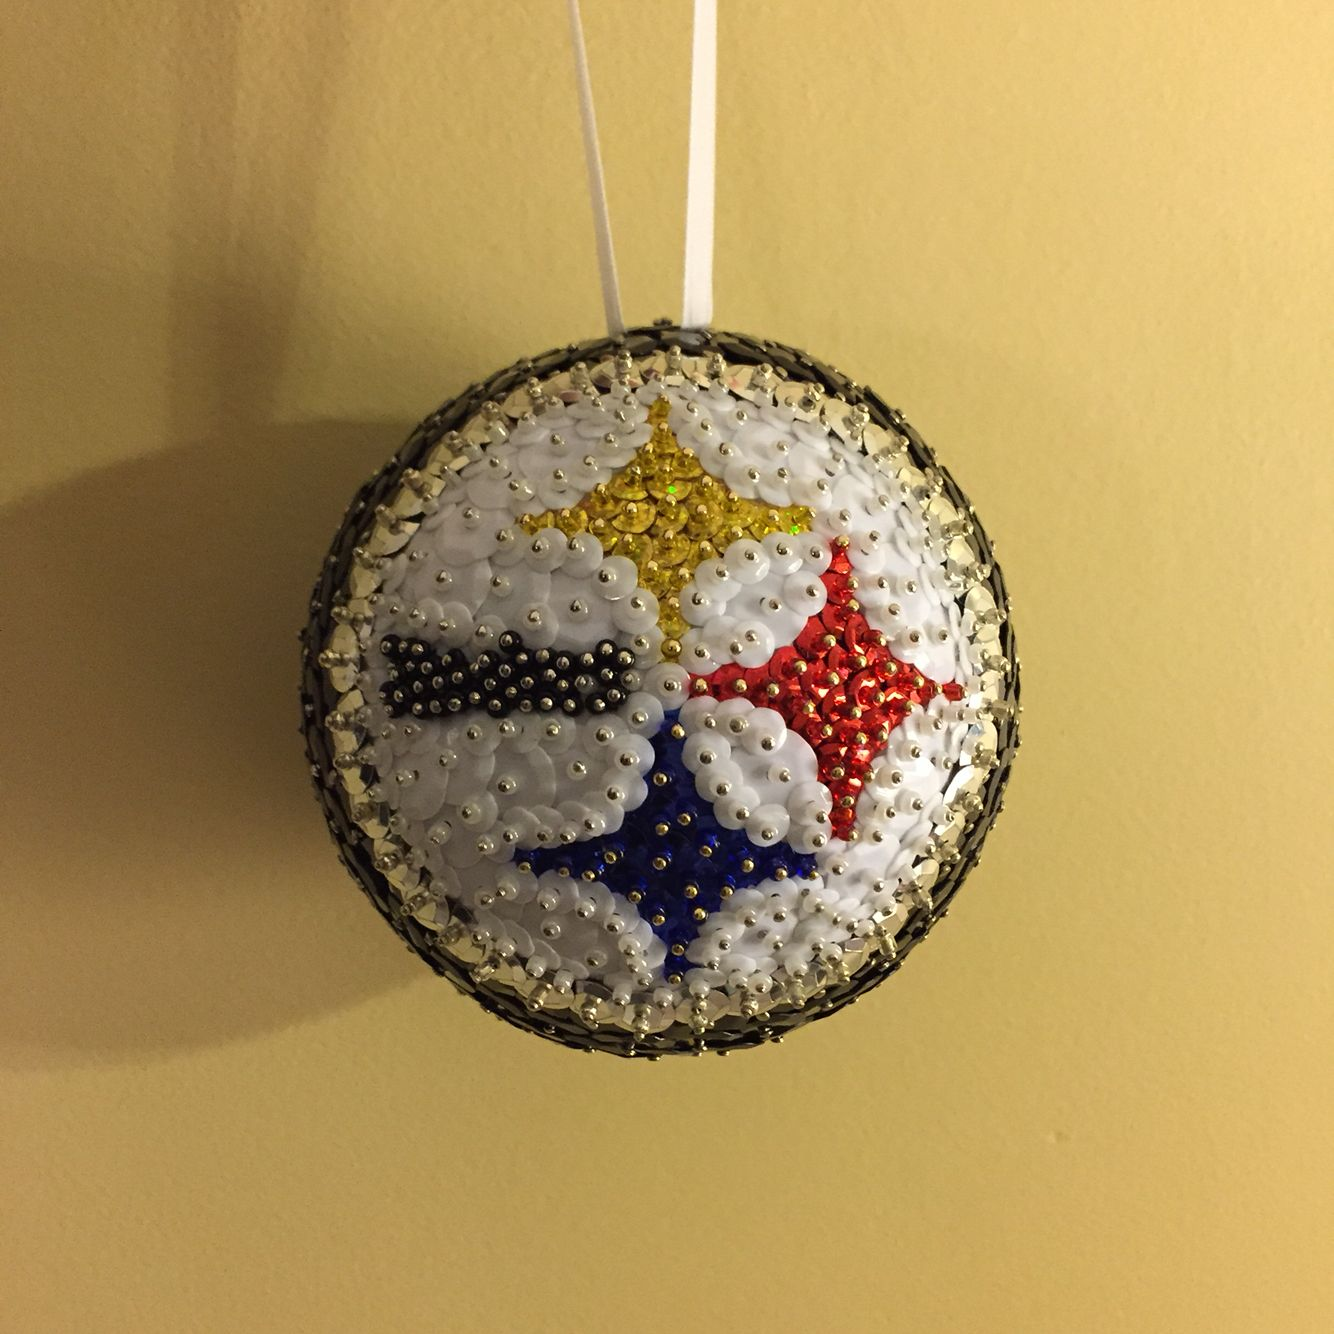 Steelers ornament | Ornaments, Christmas ornaments ...